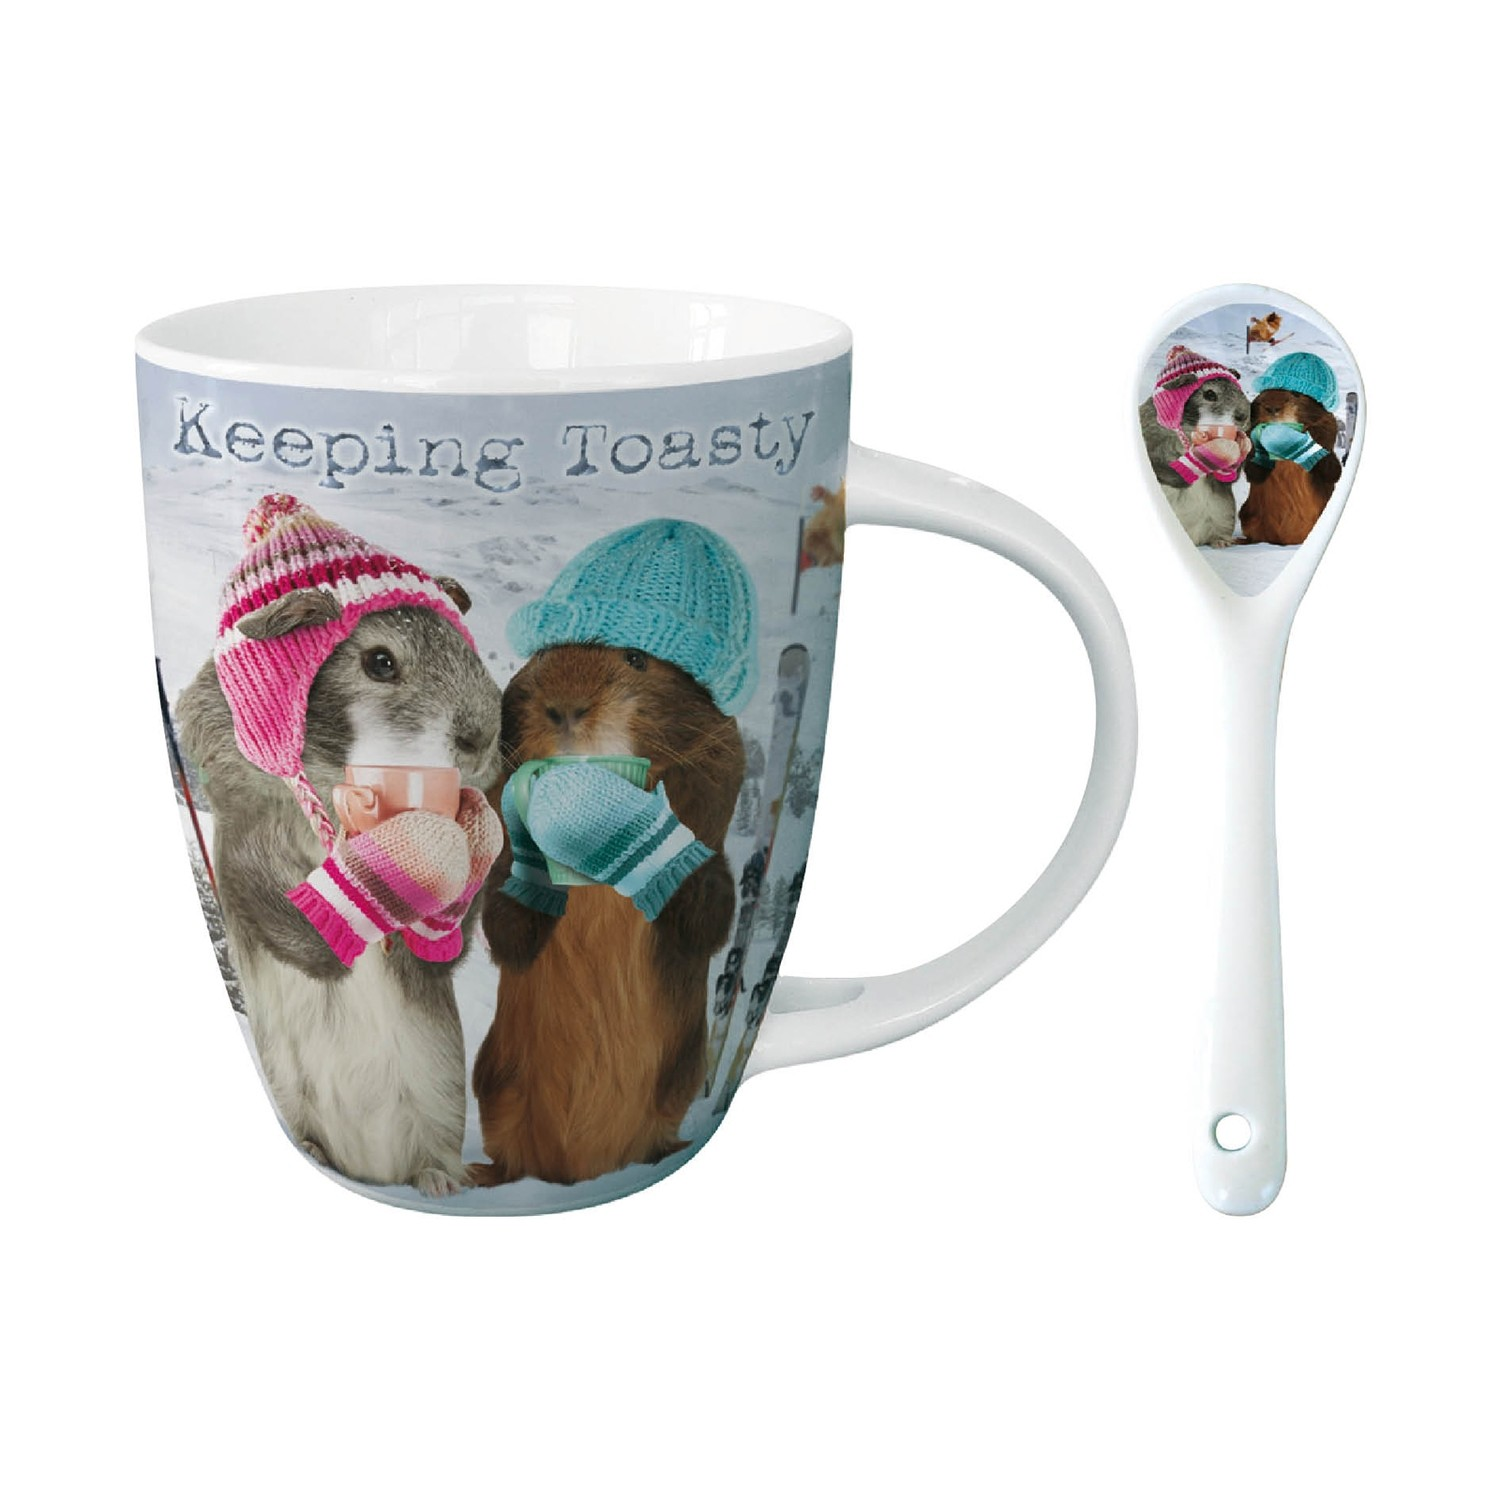 GUINEA PIG KEEPING TOASTY HOT CHOCOLATE MUG with matching spoon